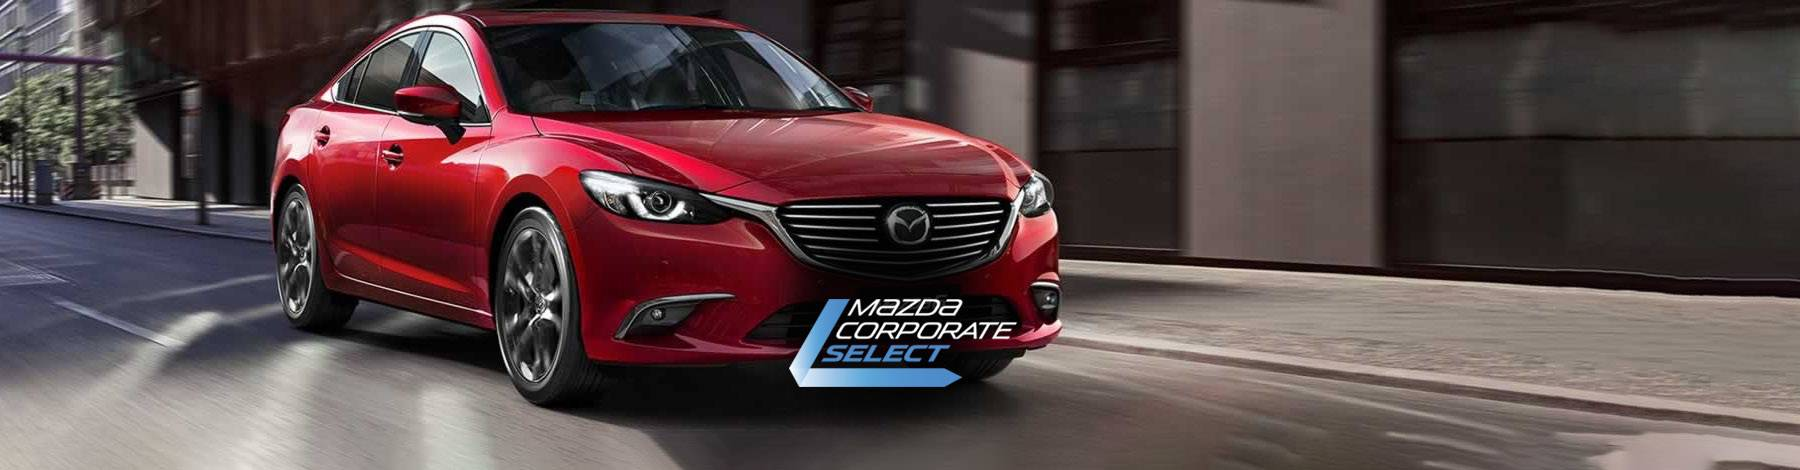 AMR Mazda is your local Mazda dealer, offering great driveaway deals